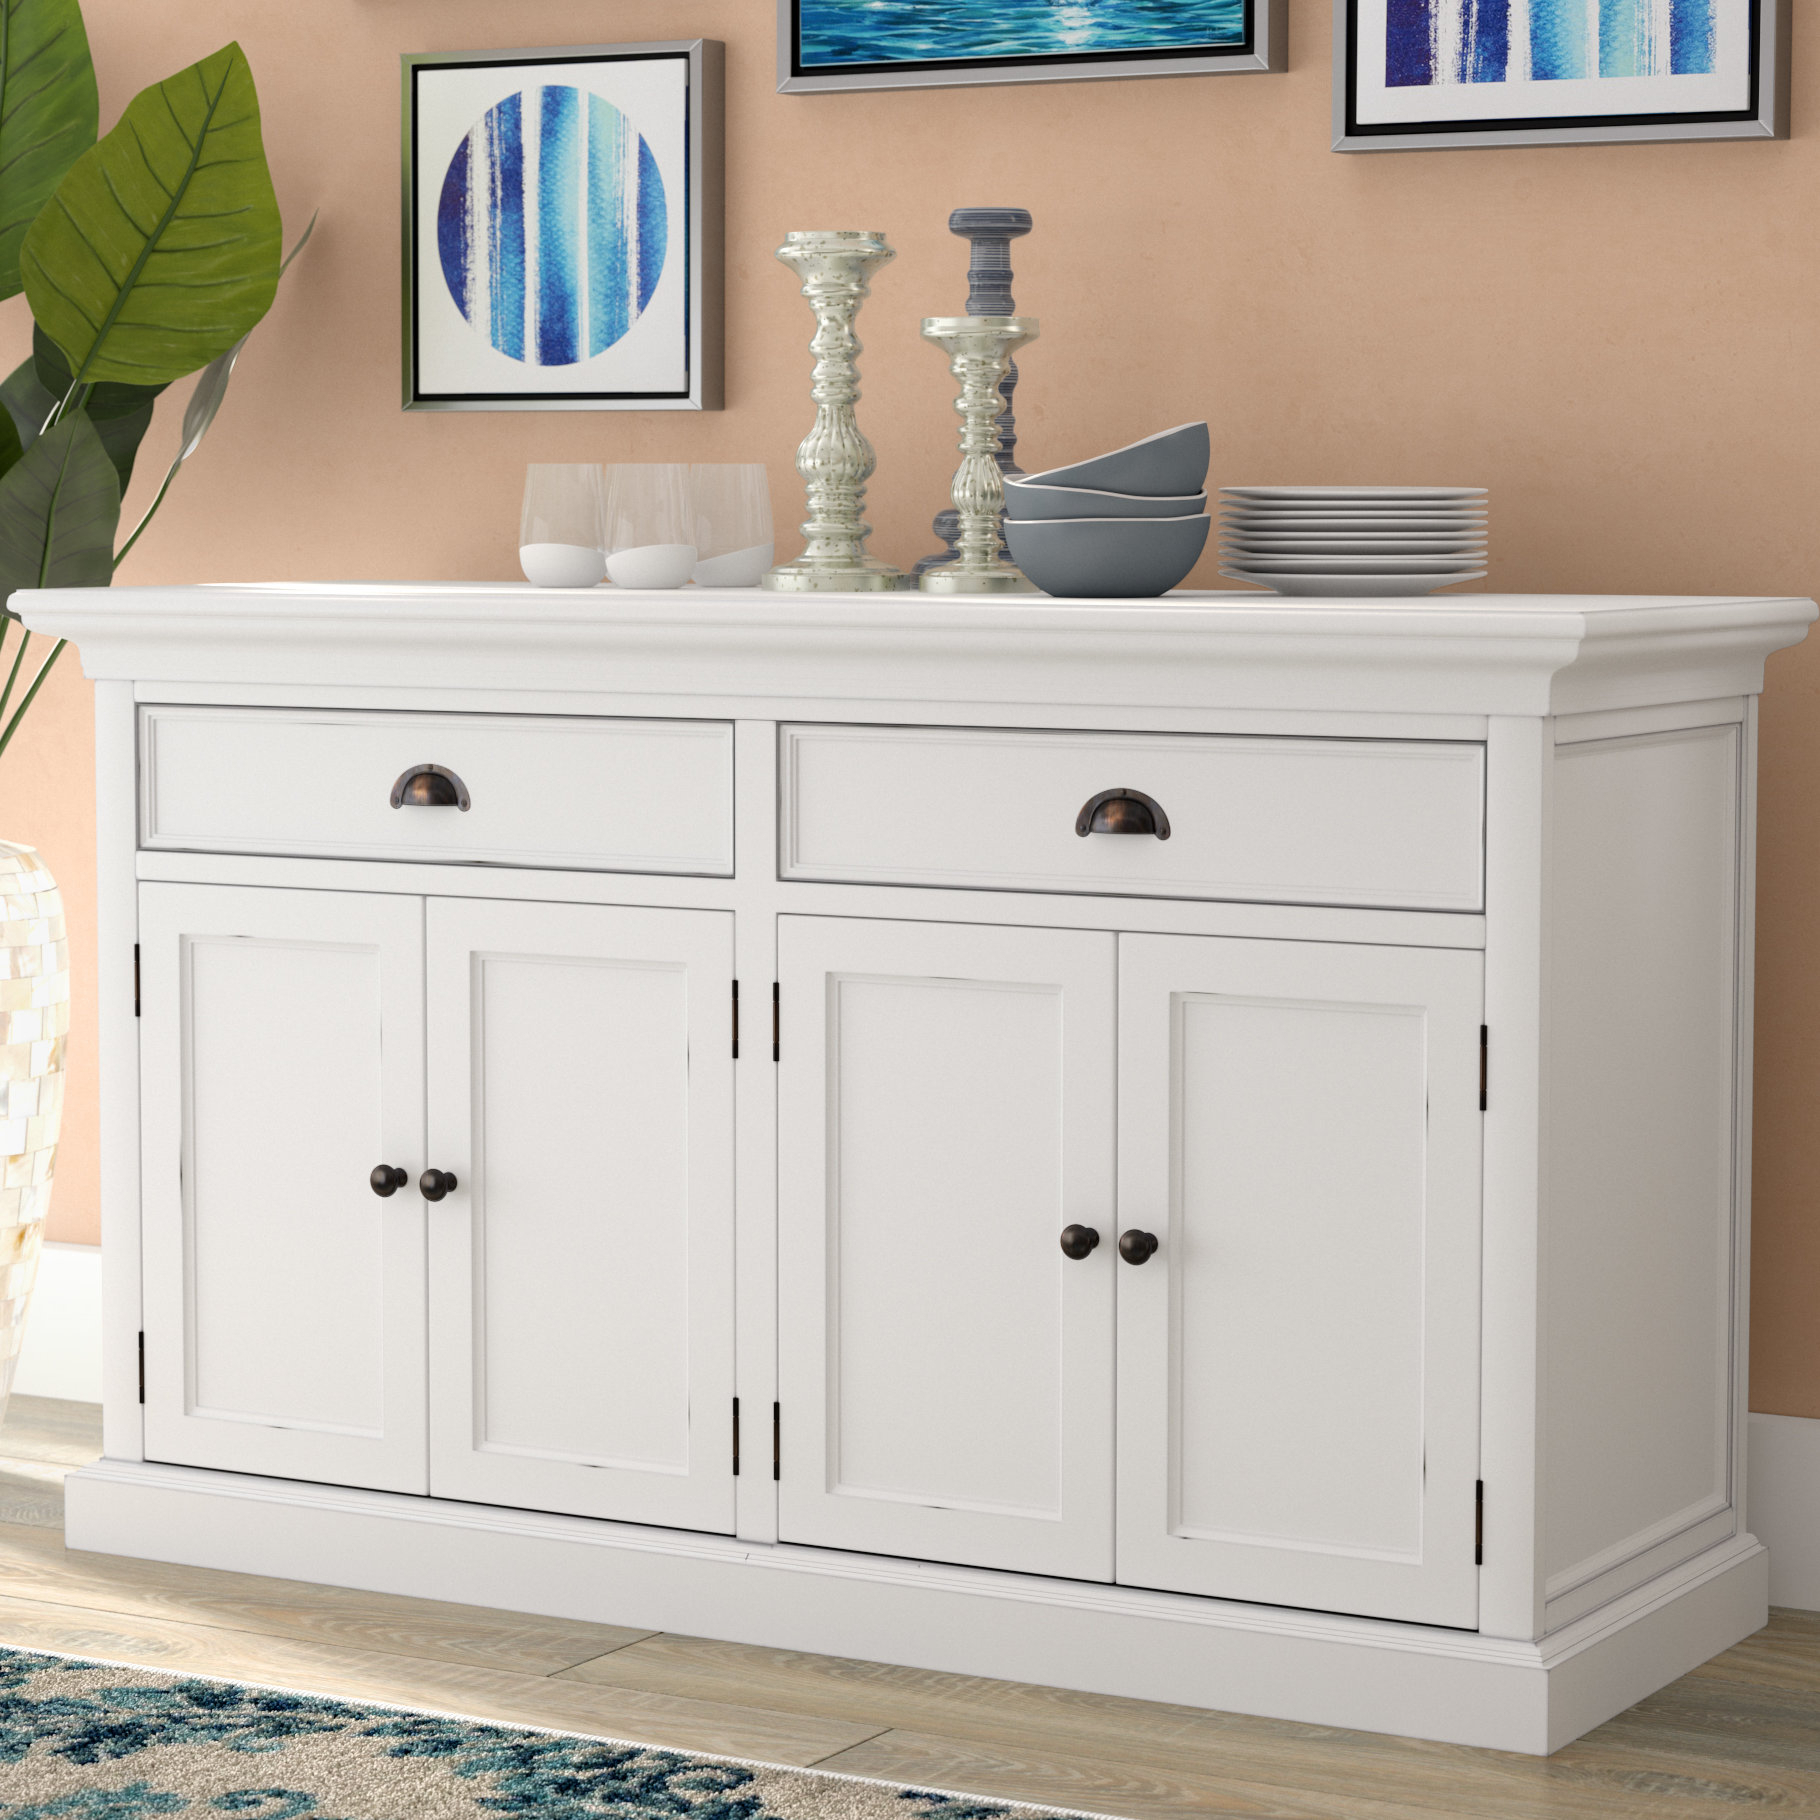 Beachcrest Home Amityville Wood Sideboard & Reviews | Wayfair In Raunds Sideboards (Gallery 20 of 30)